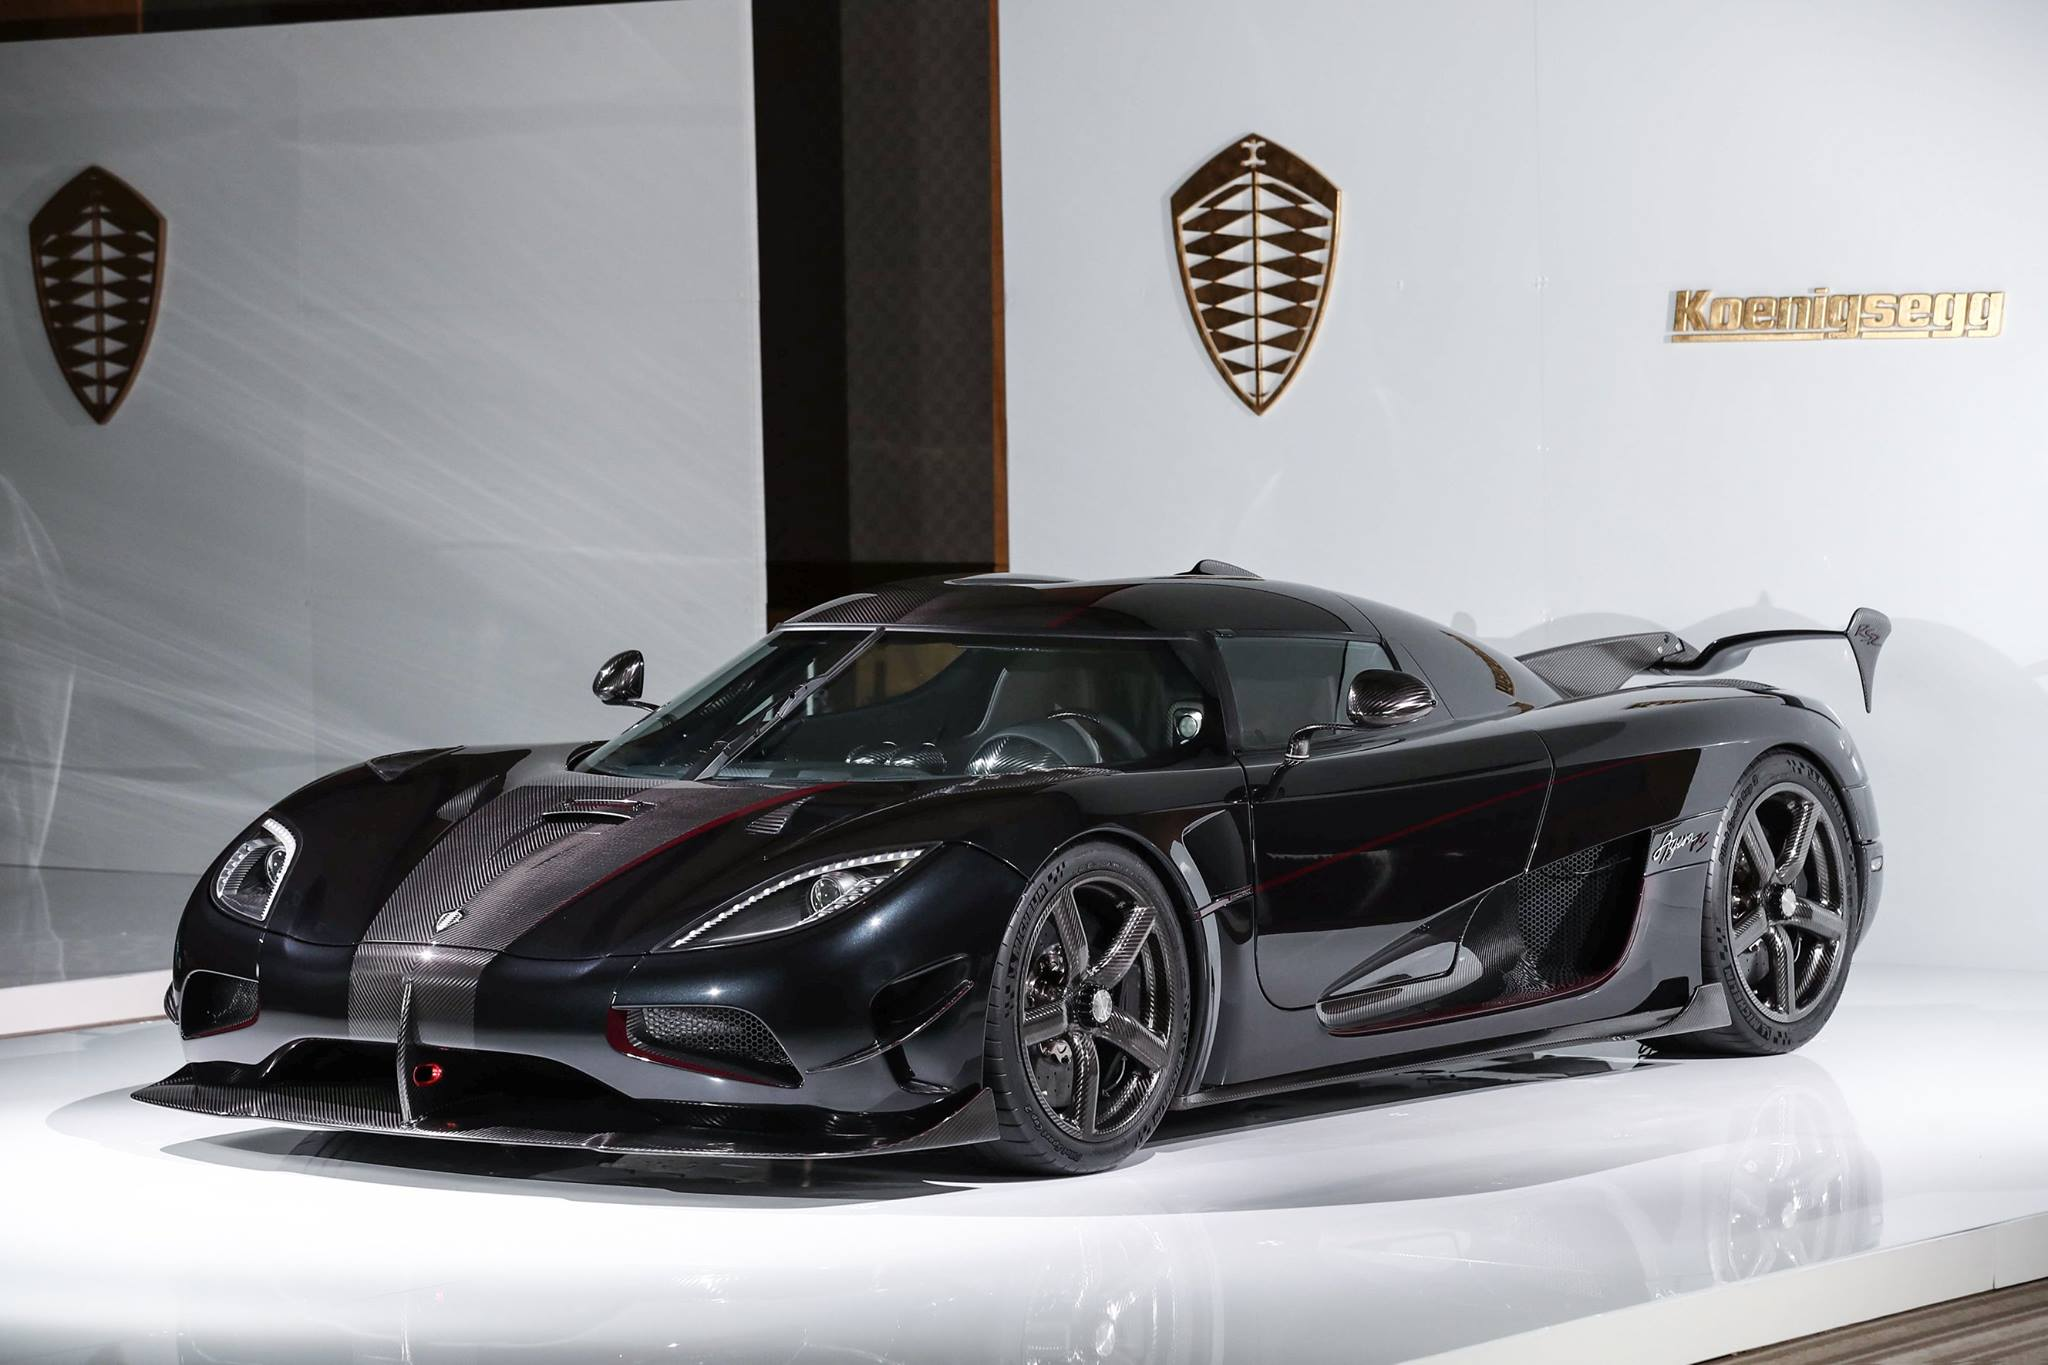 rc car model with Koenigsegg Agera Rsr Debuts In Japan Limited To 3 Units Only on LamborghiniHuracan1 24 Orange together with Watch moreover 322520689517 in addition 2016 Ktm Rc 390 Buyers Guide as well Koenigsegg Agera Rsr Debuts In Japan Limited To 3 Units Only.